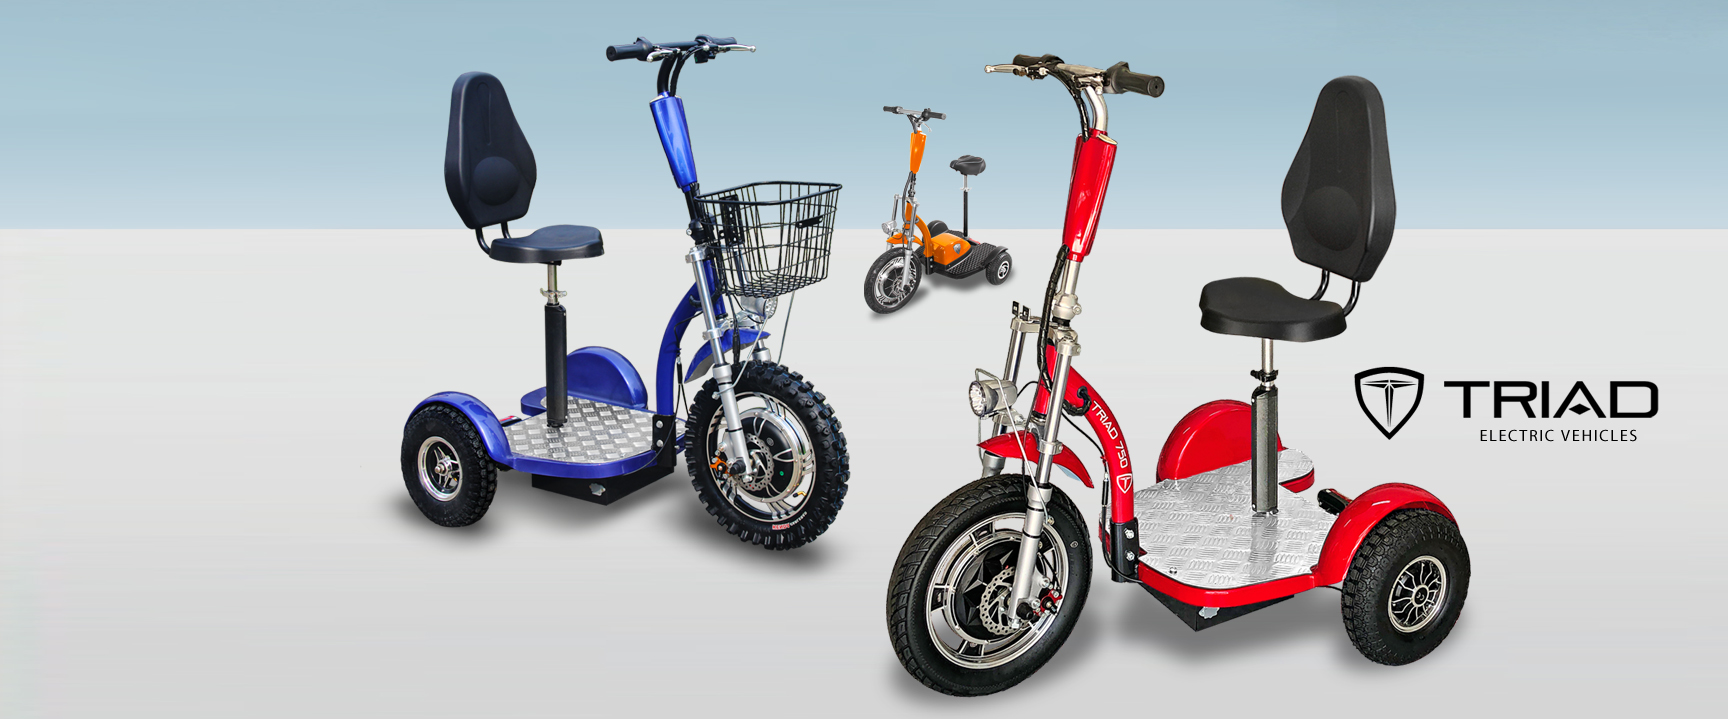 Triad 750, Quantum Dual, 3 Wheel Scooter, Personal Electric Vehicles for Adults